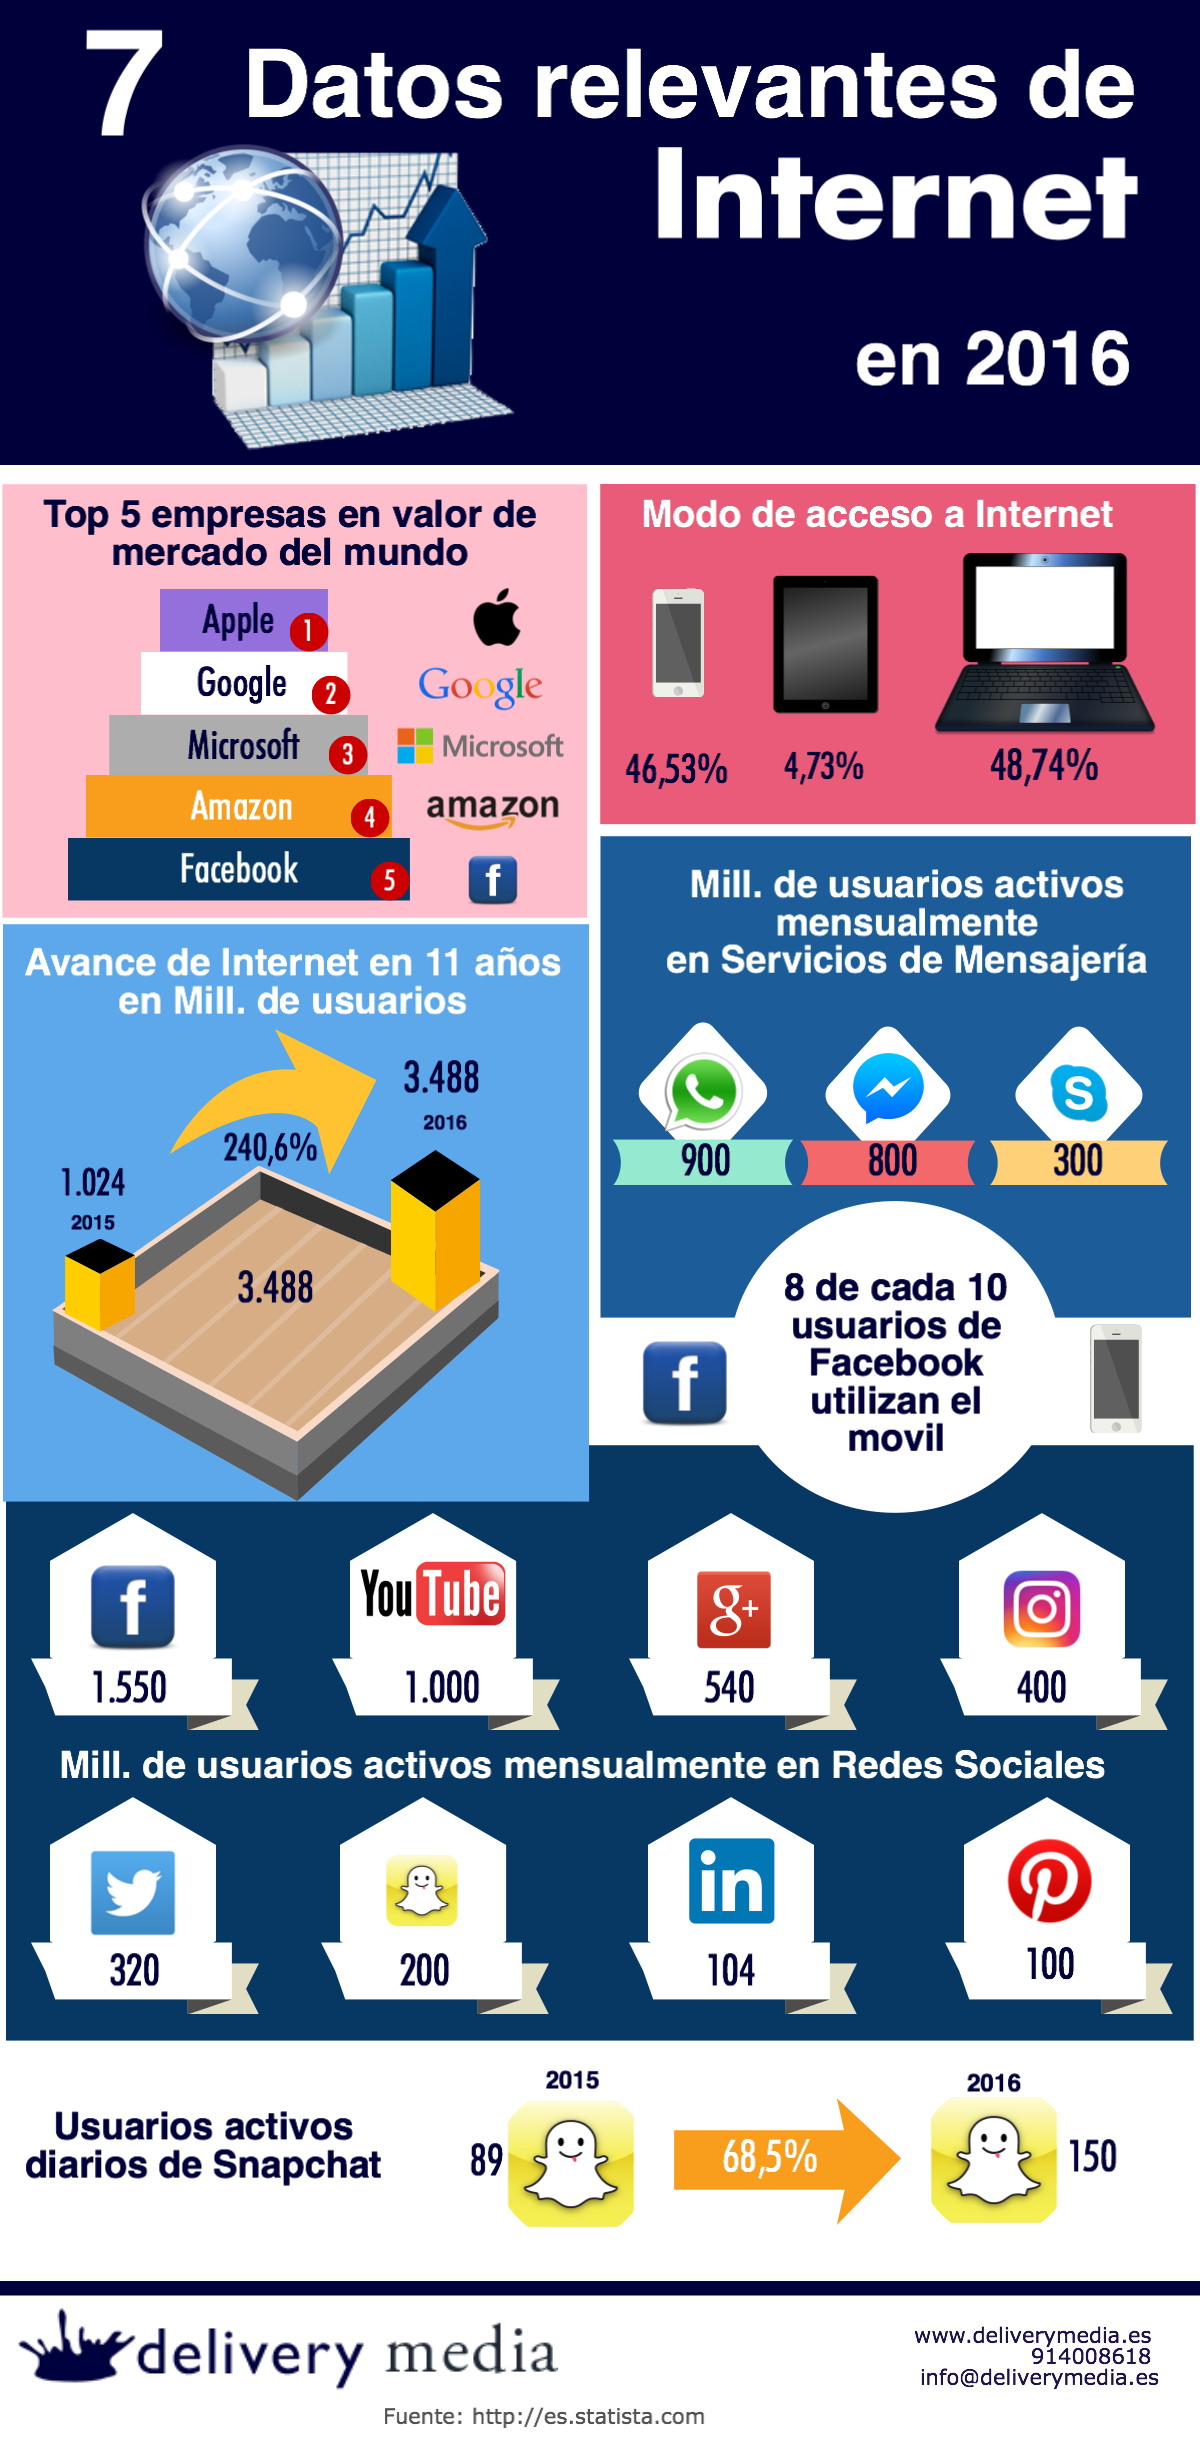 delivery-media-7-datos-relevantes-internet-2016